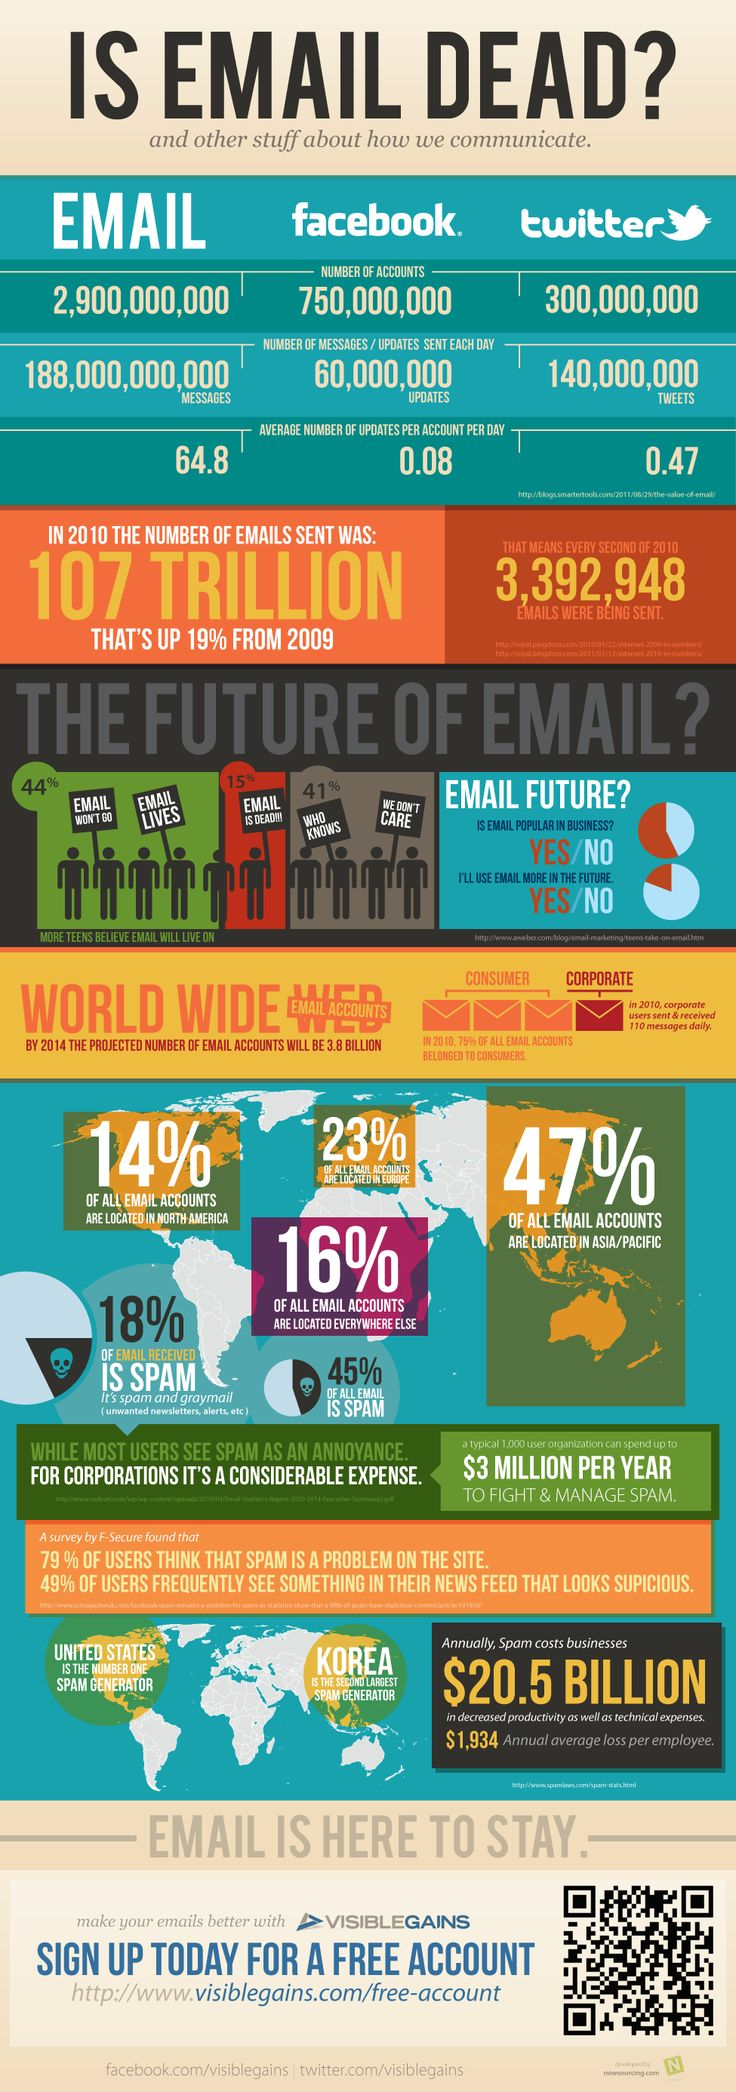 #email is not dead.  All #smallbiz , medium #business and large biz should be building their email list.